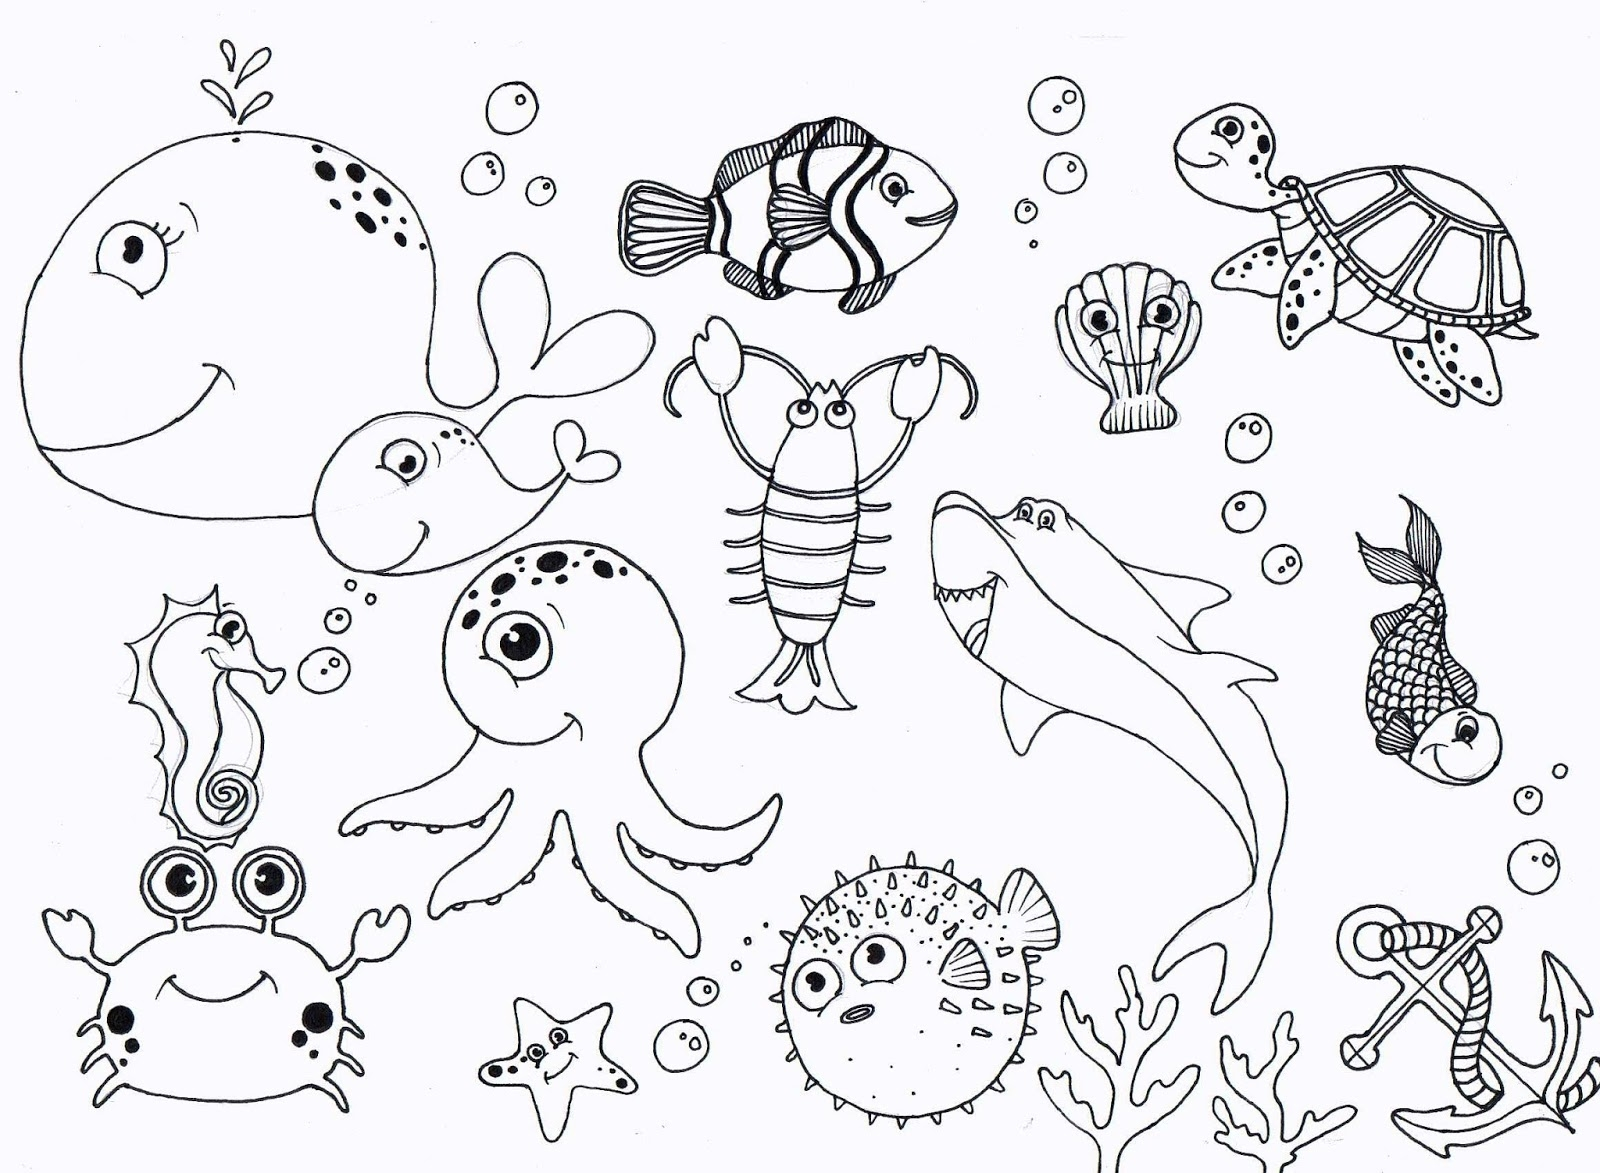 Fish Coloring Pages - Under the Sea Coloring Pages Coloringsuite